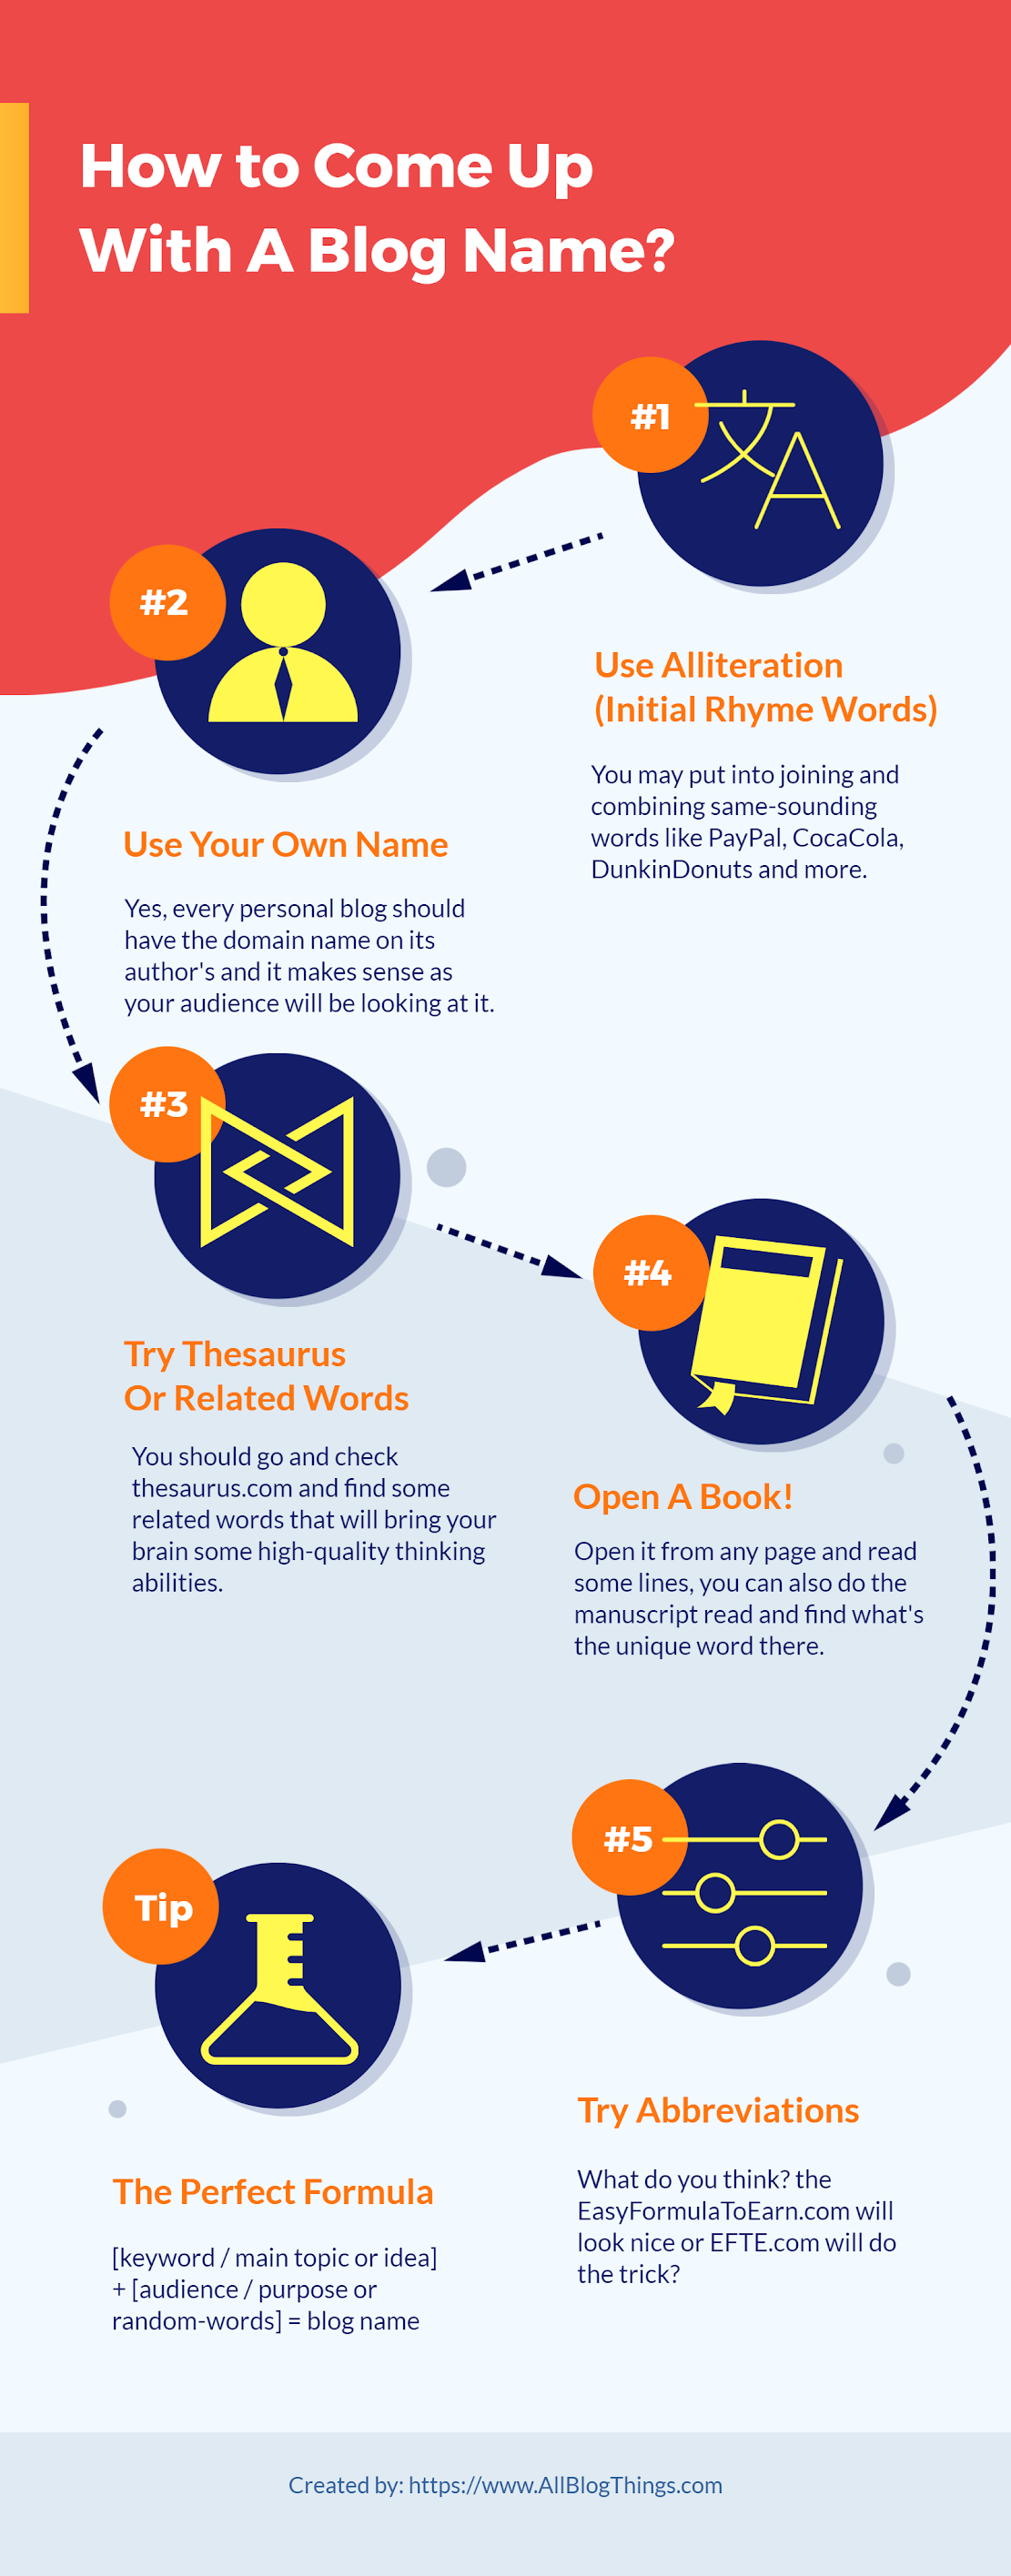 How To Come Up With A Blog Name (Infographic)